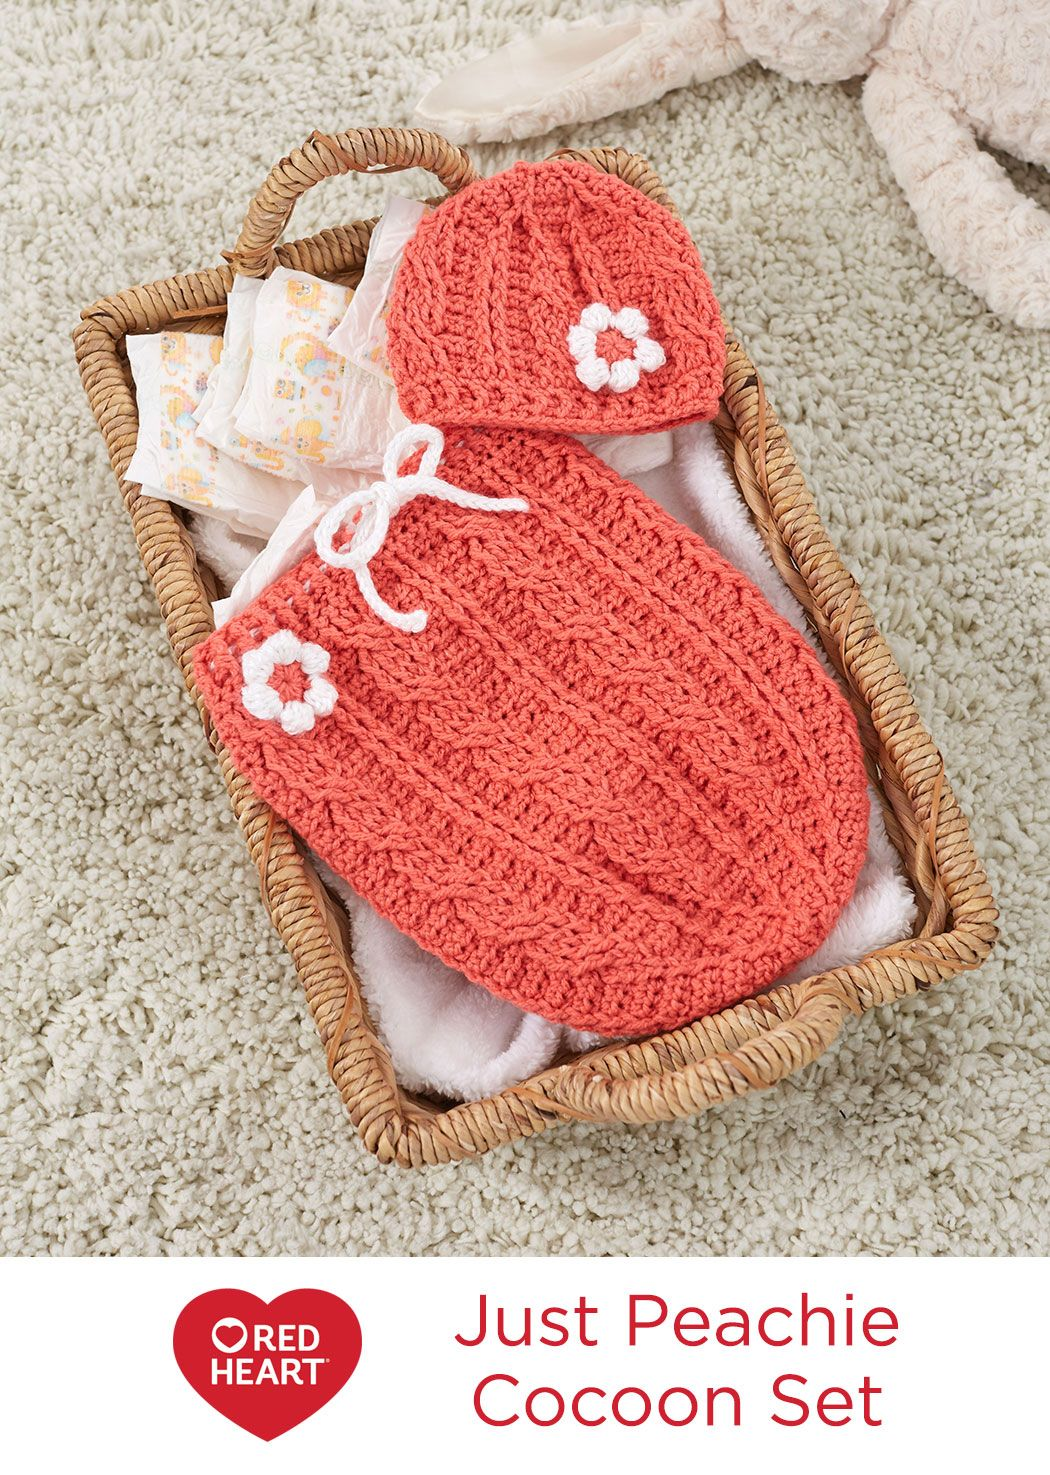 Just Peachie Cocoon Set Free Crochet Pattern in Red Heart Yarns -- Be ready  to welcome your newborn bundle of joy with this cozy cocoon and beanie set. 0ebffe81cede